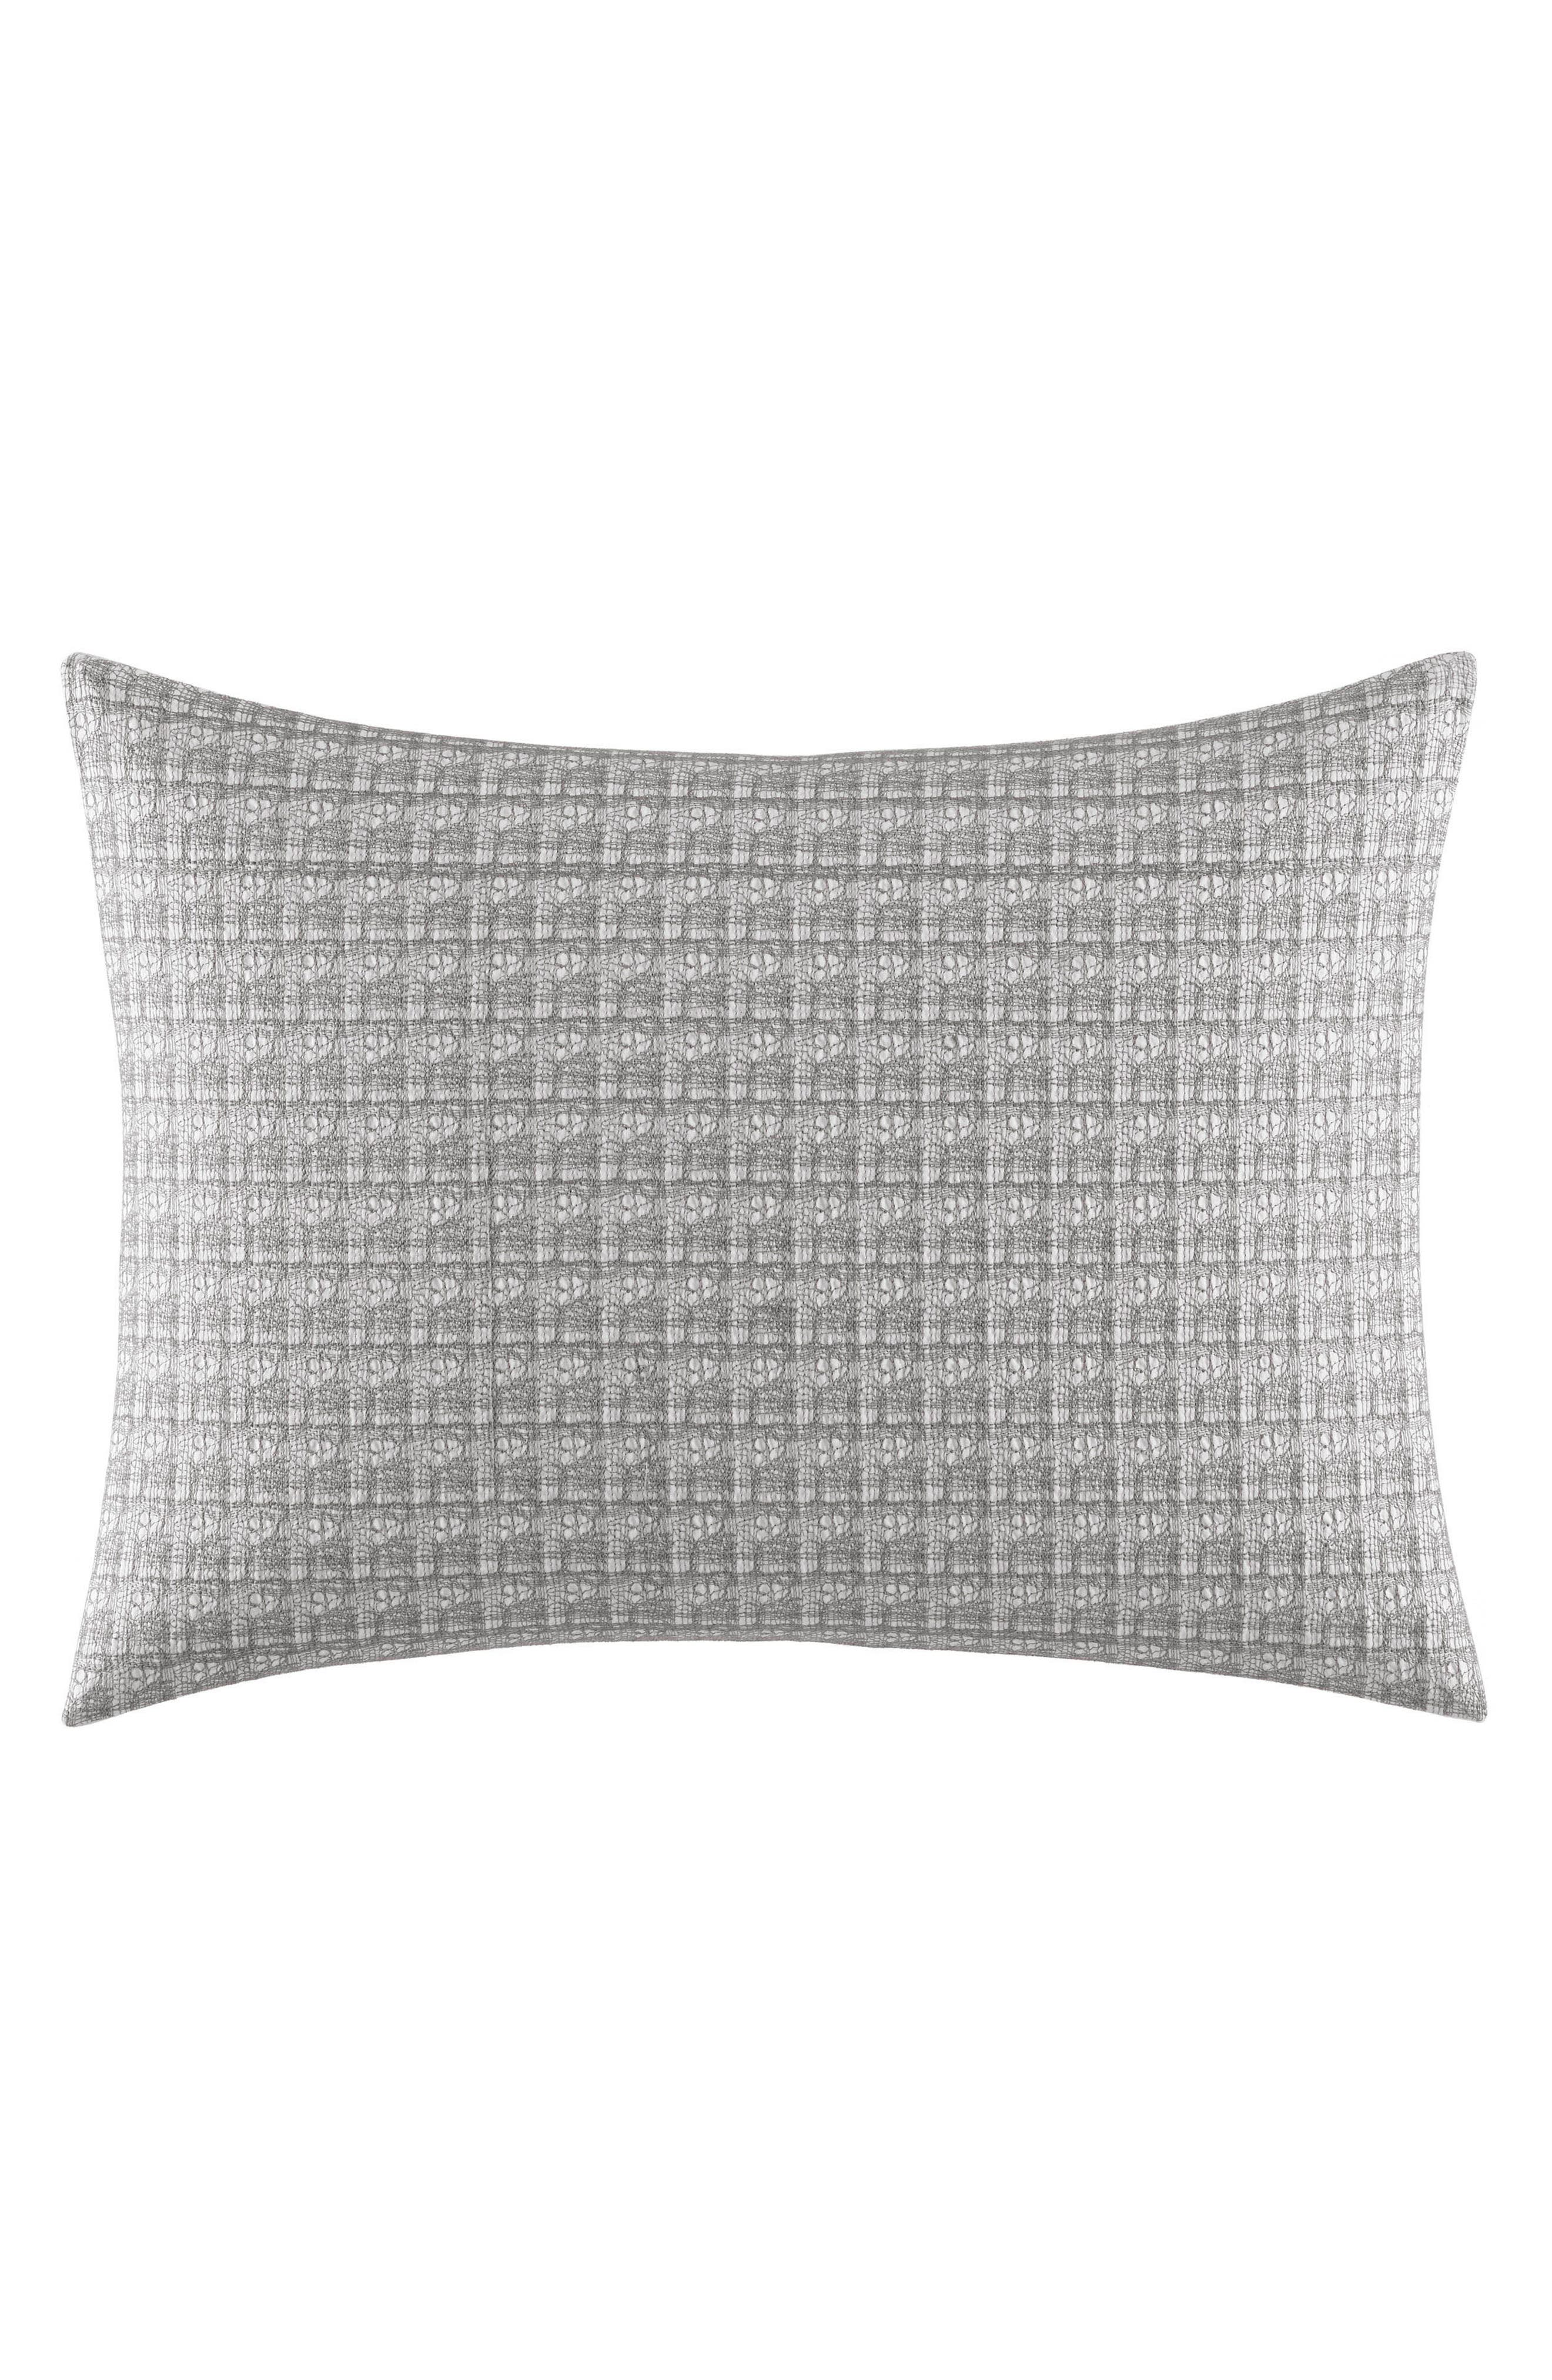 Alternate Image 1 Selected - Vera Wang Mirrored Breakfast Accent Pillow